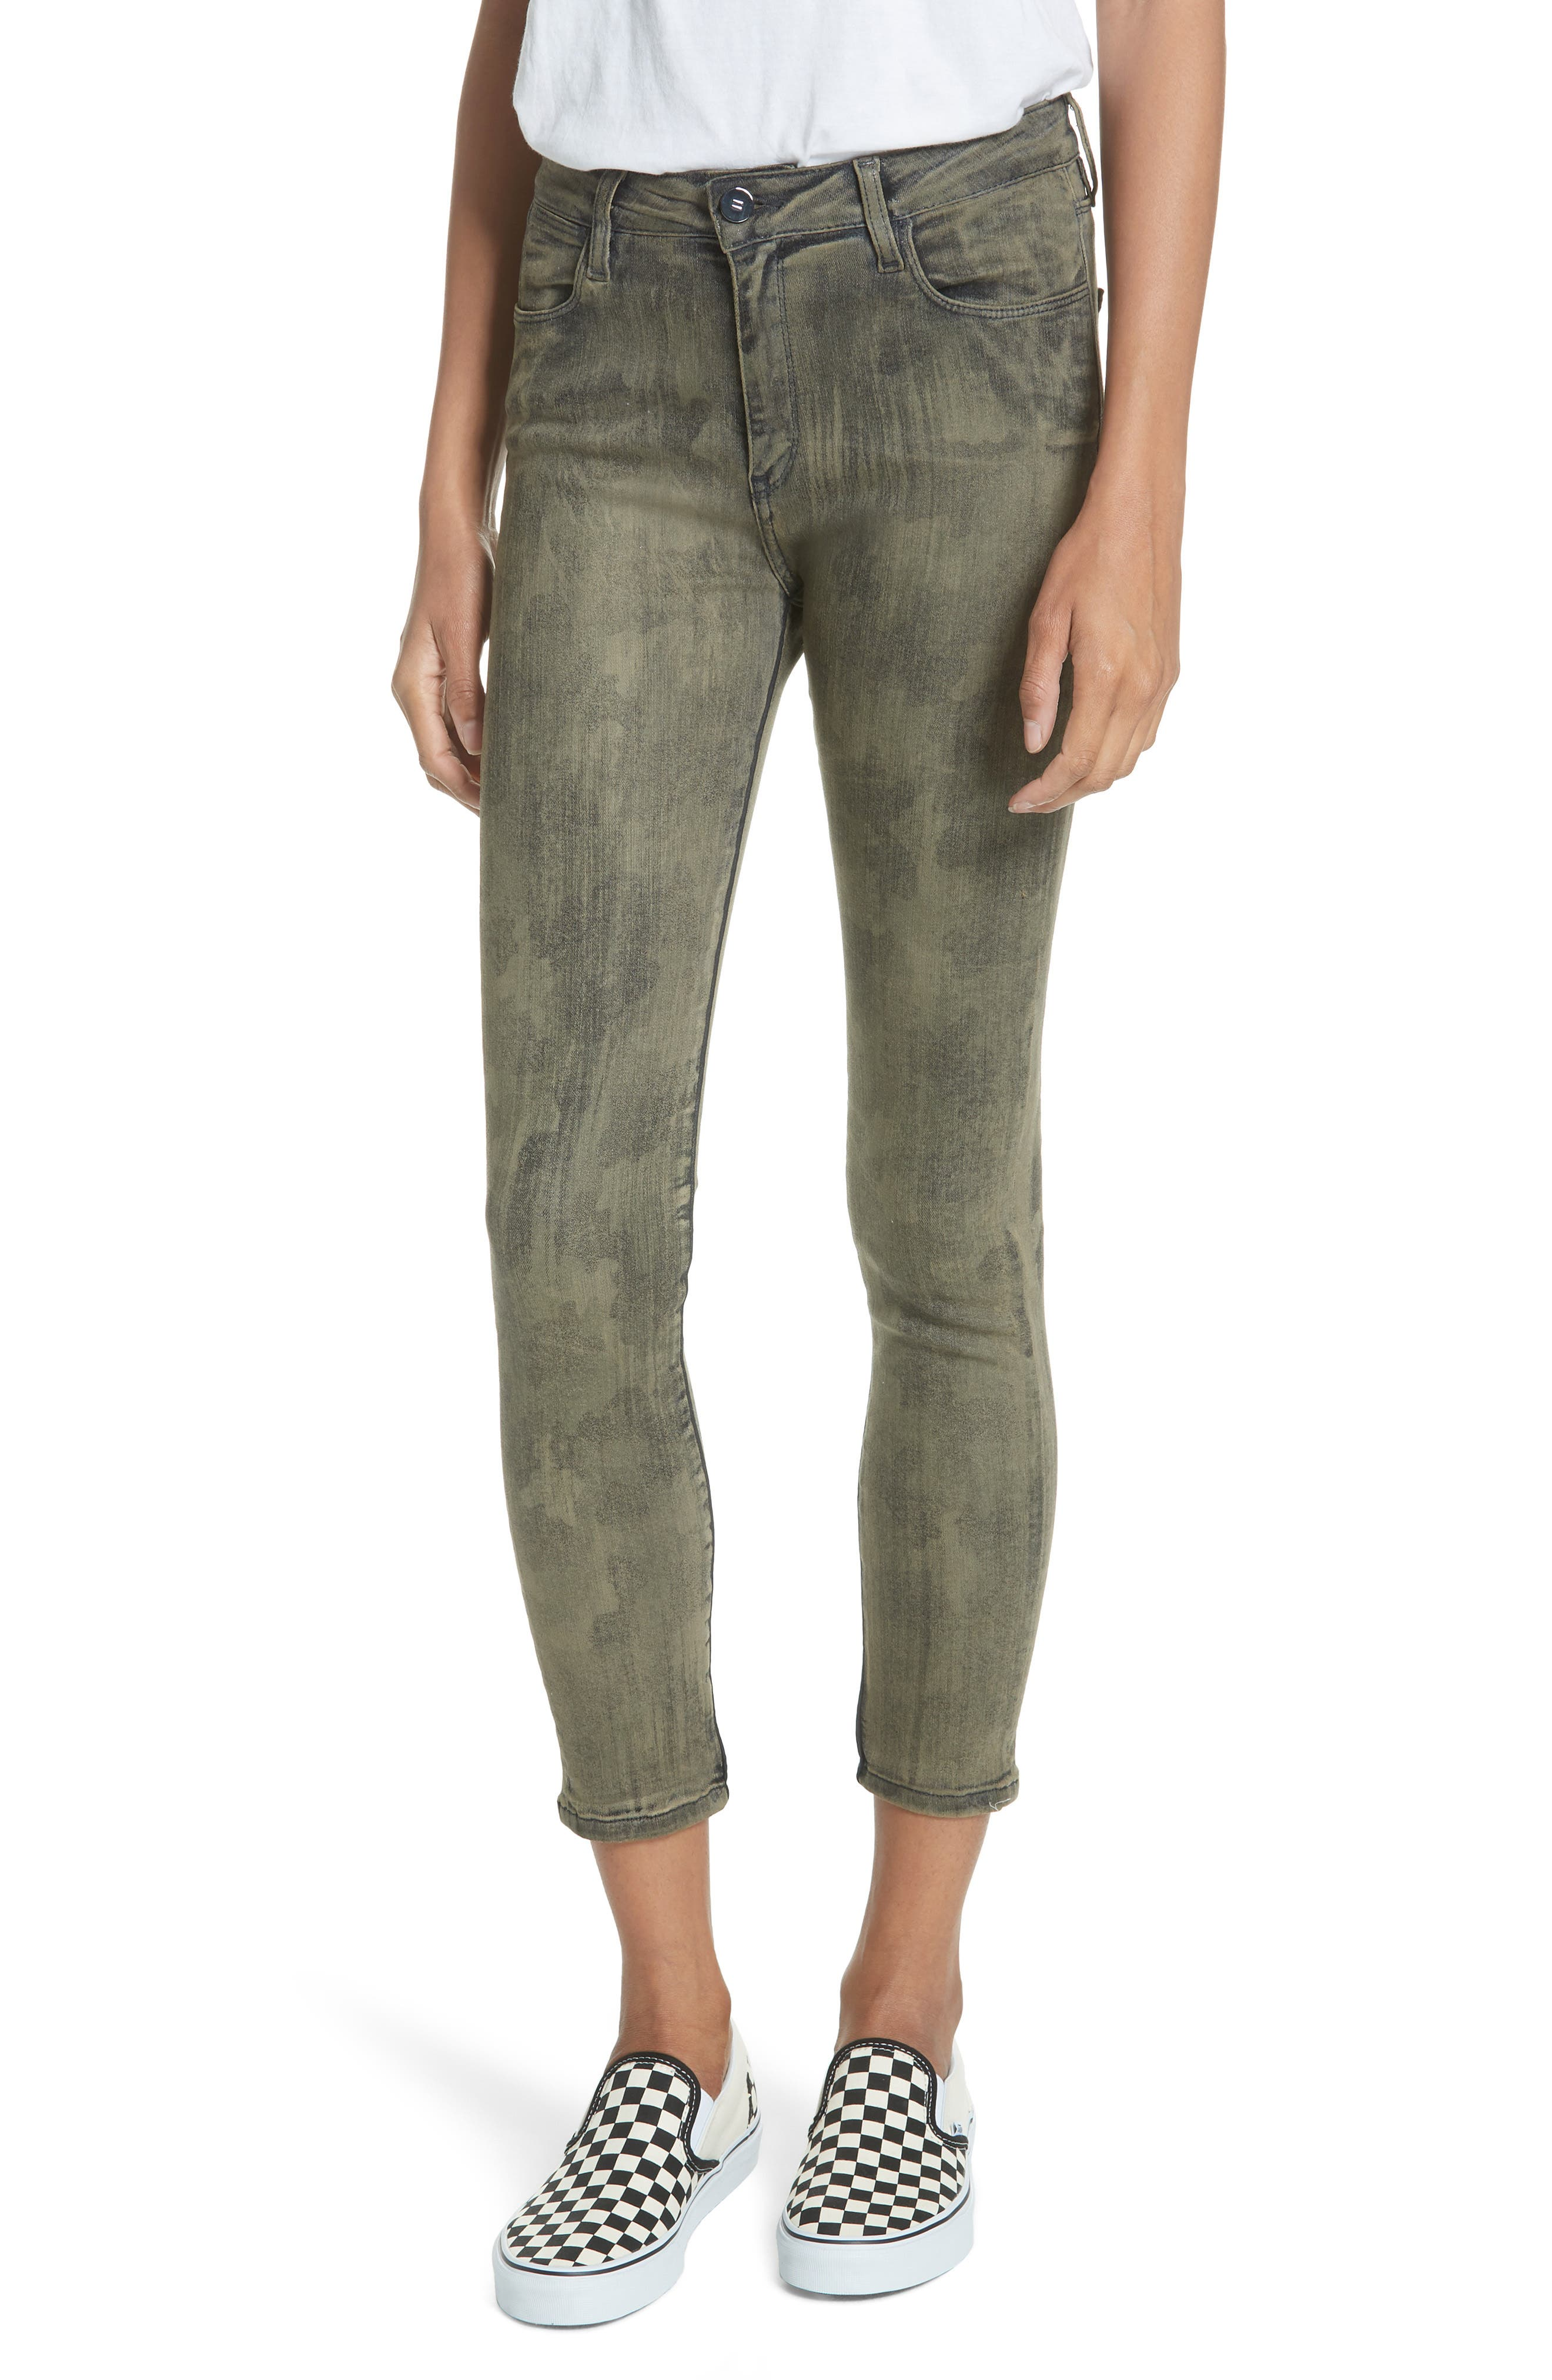 BROCKEN BOW Reina Camille Camouflage Skinny Jeans in Camou Army